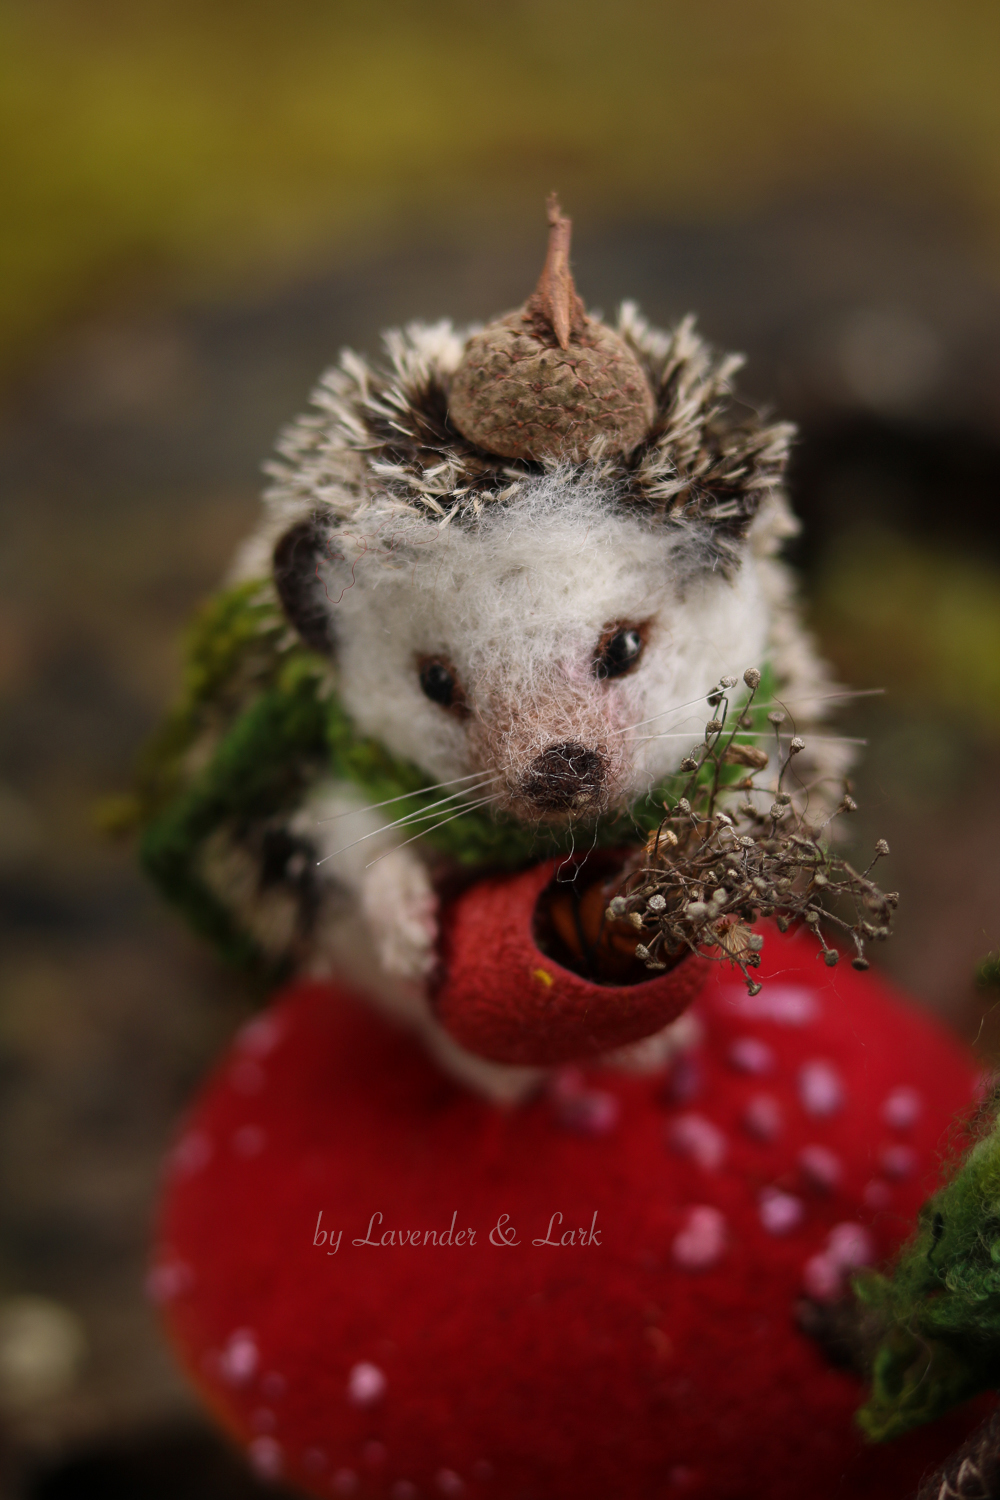 Hattie & Hedgie by Lavender & Lark